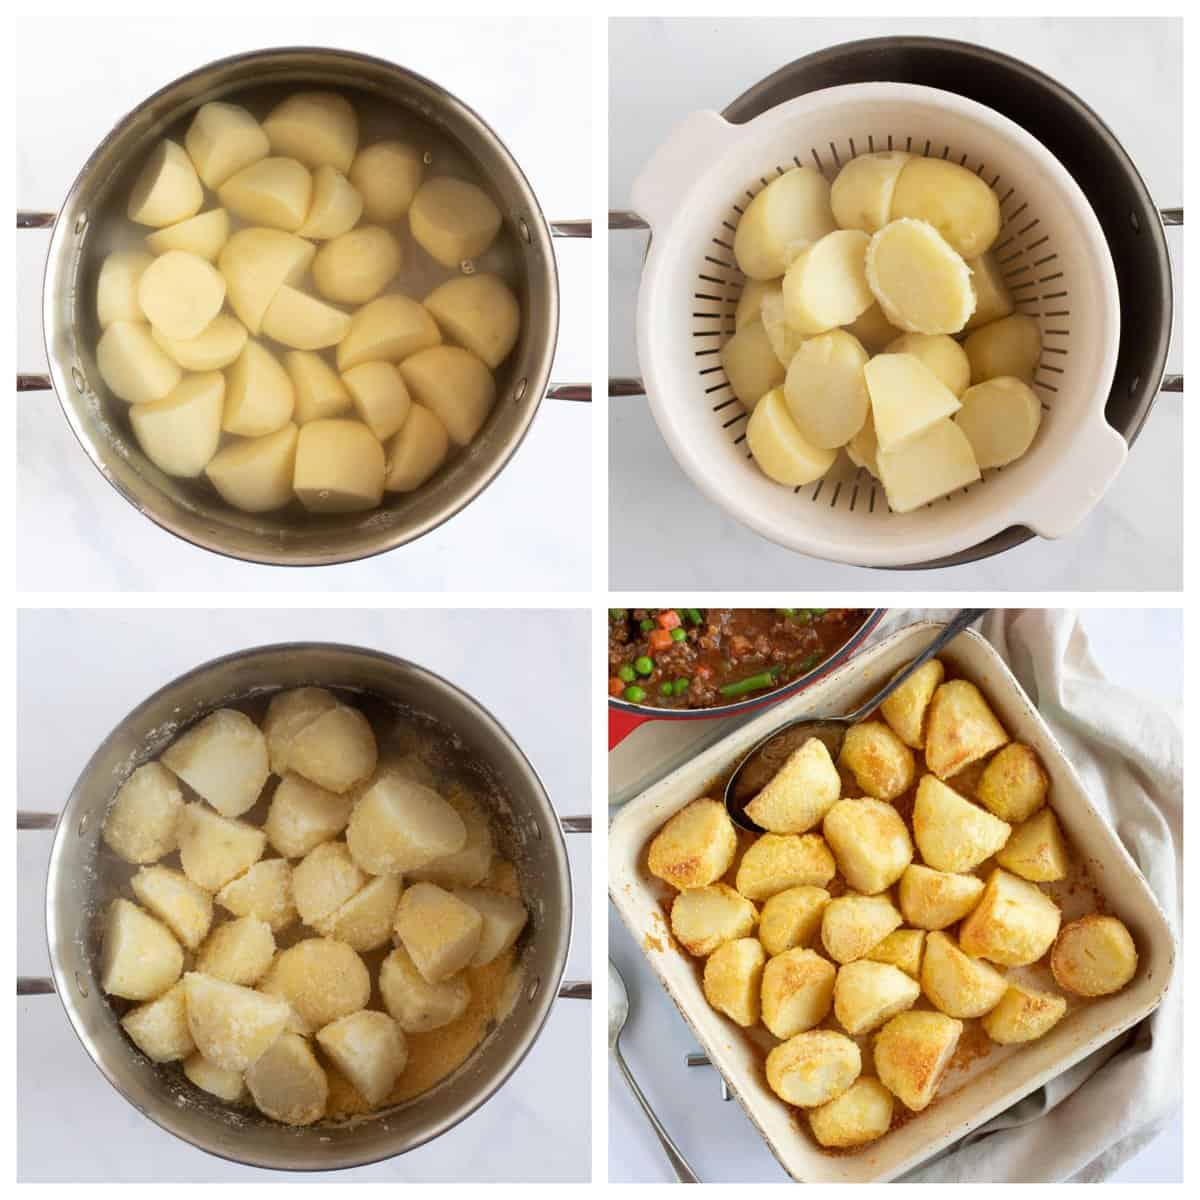 Step by step photo instructions for making the crispy roast potatoes.